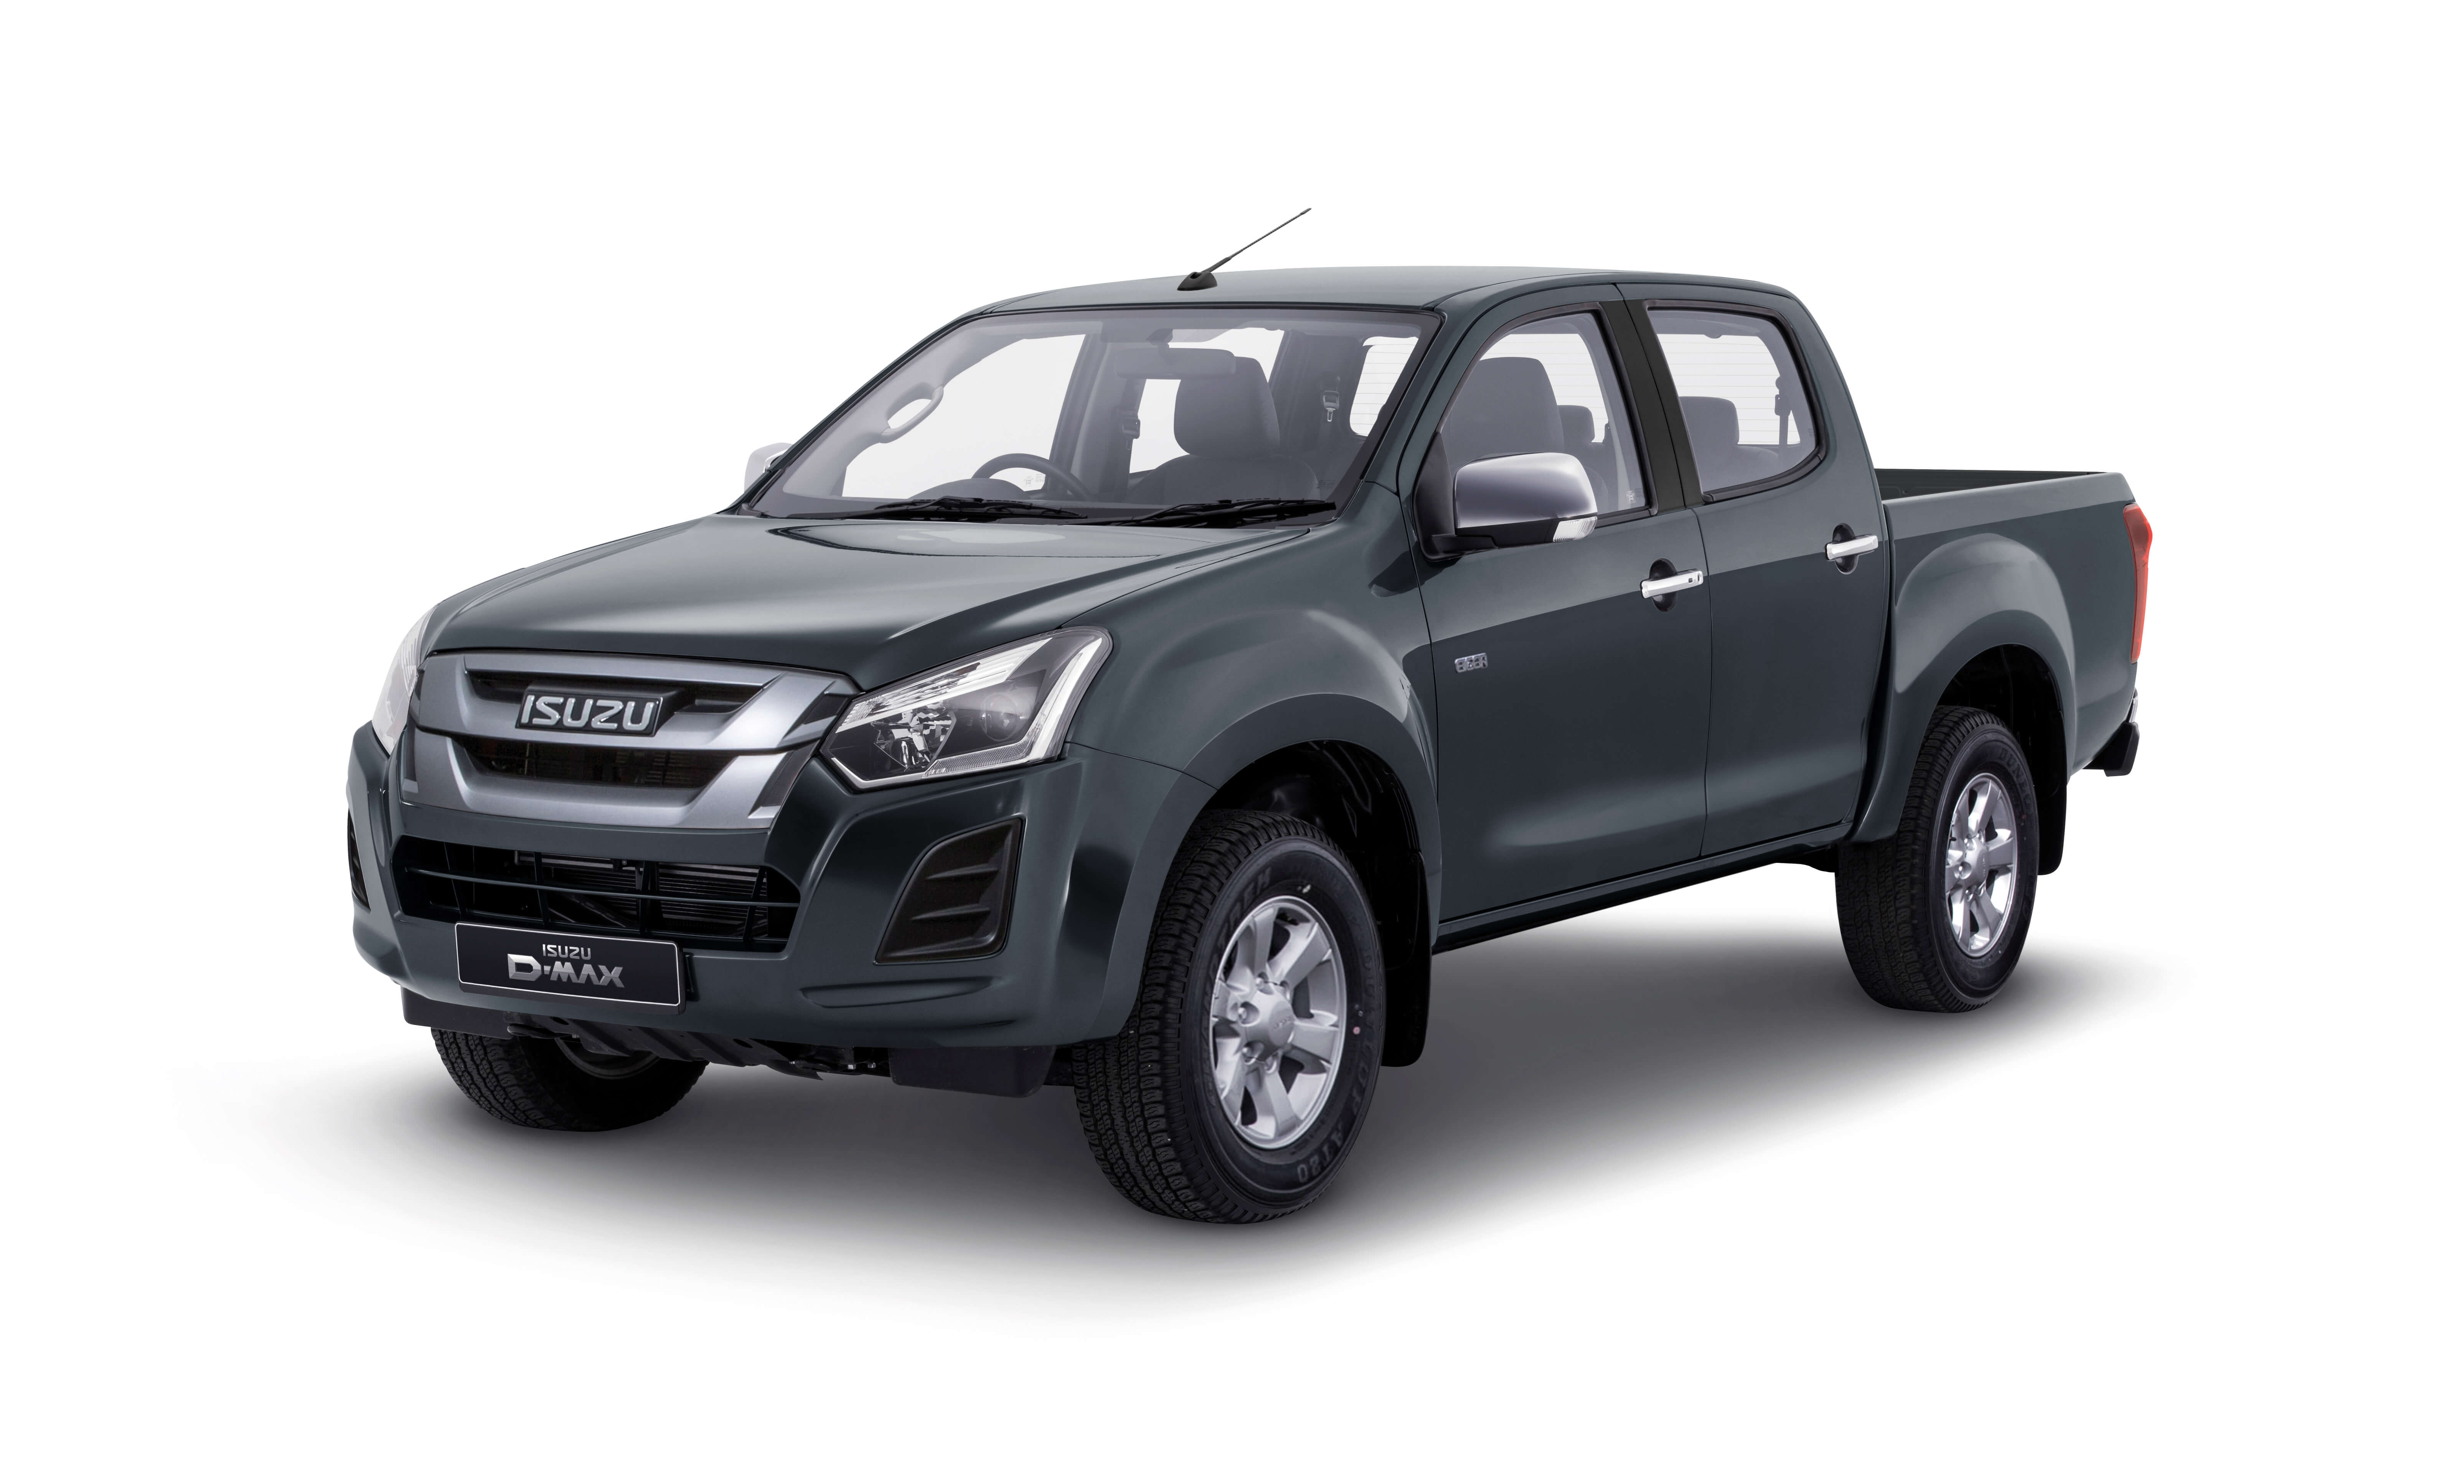 Isuzu D-Max Eiger front view in grey